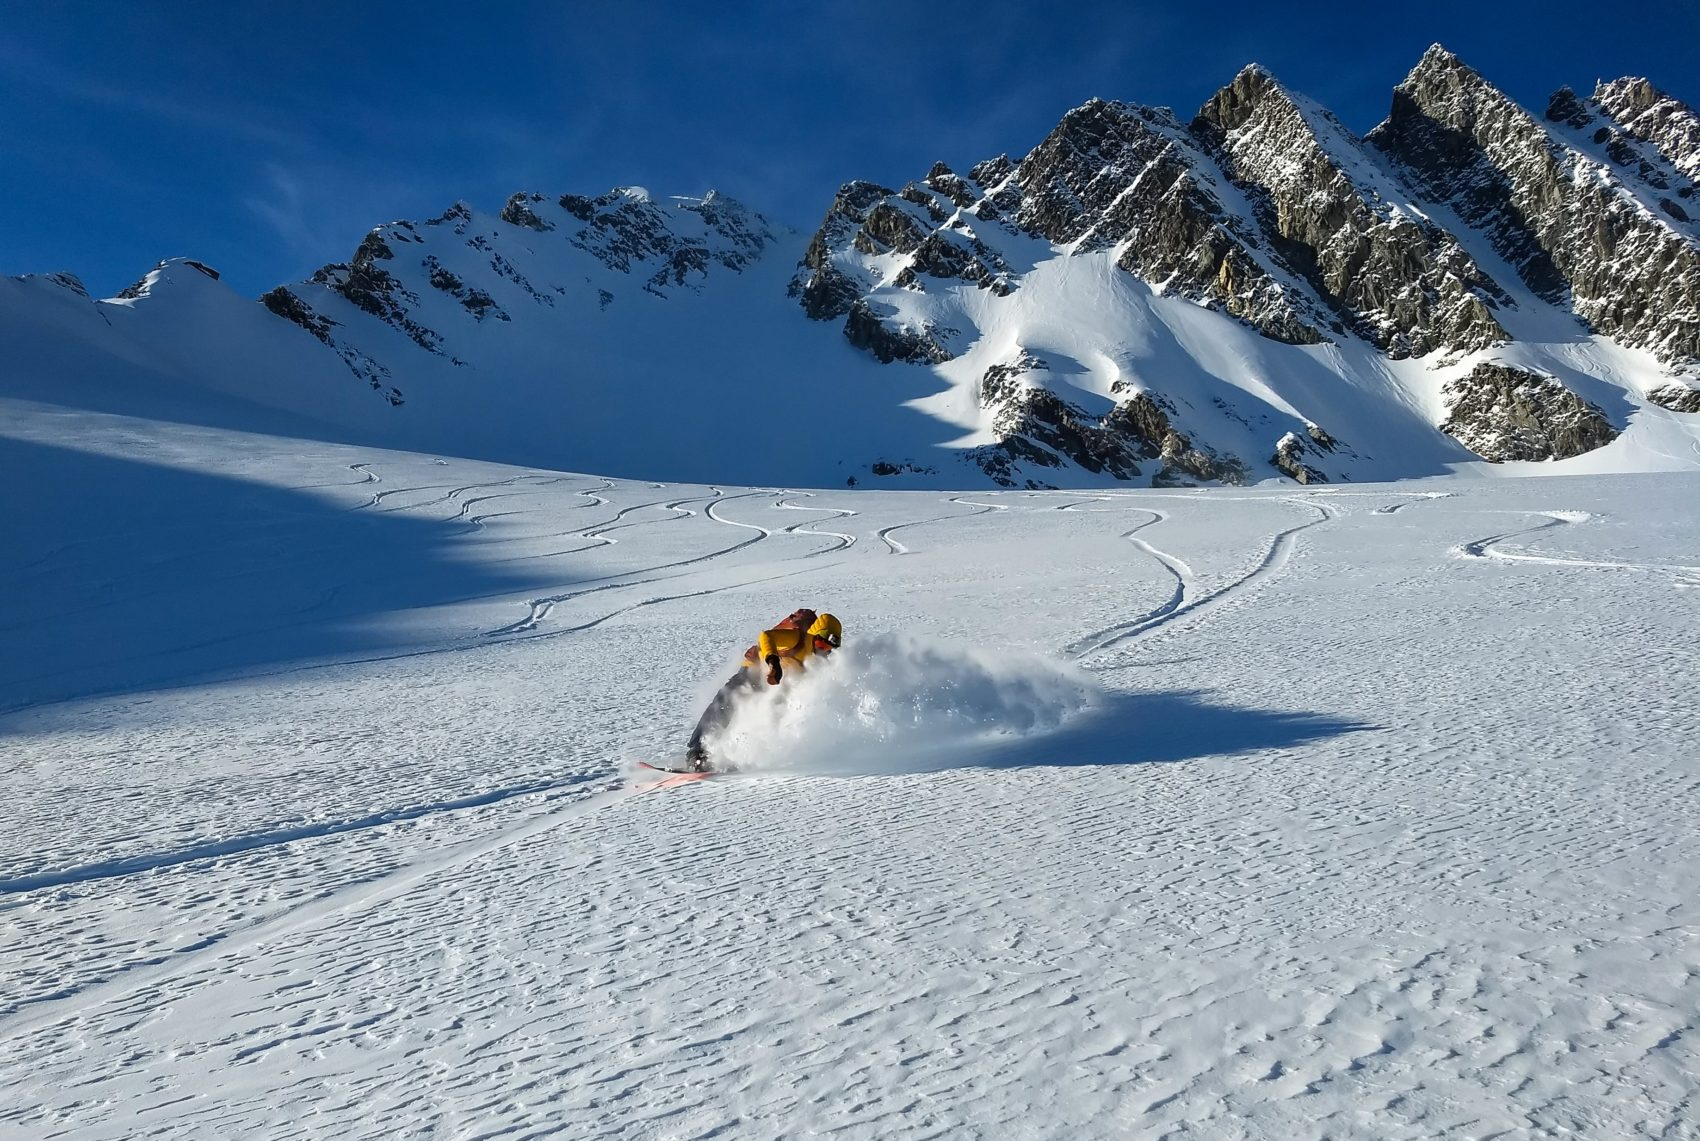 snowboarder carving through snow on swiss glacier